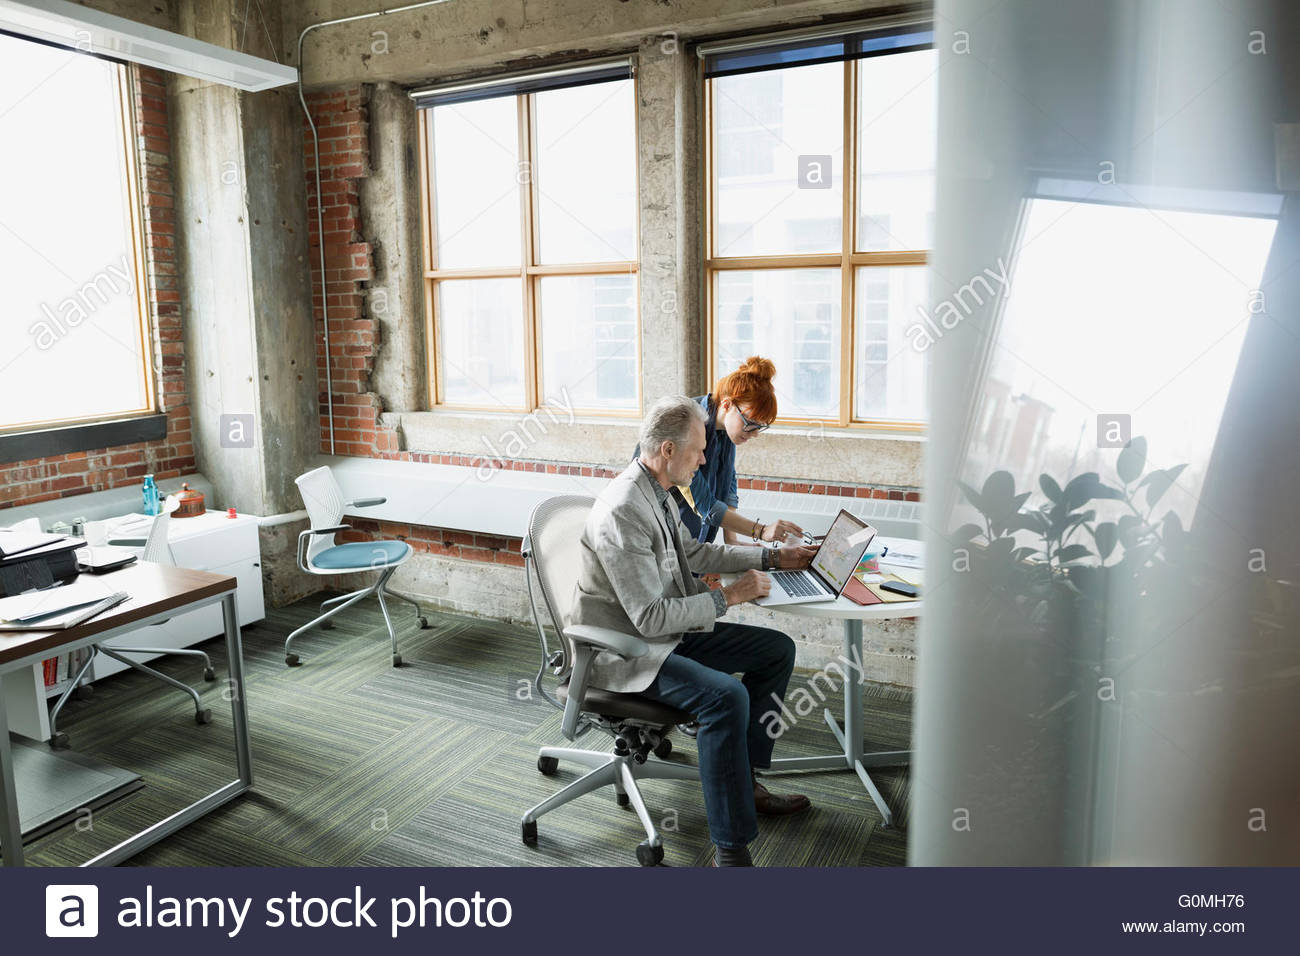 Businessman and businesswoman using laptop in office - Stock Image